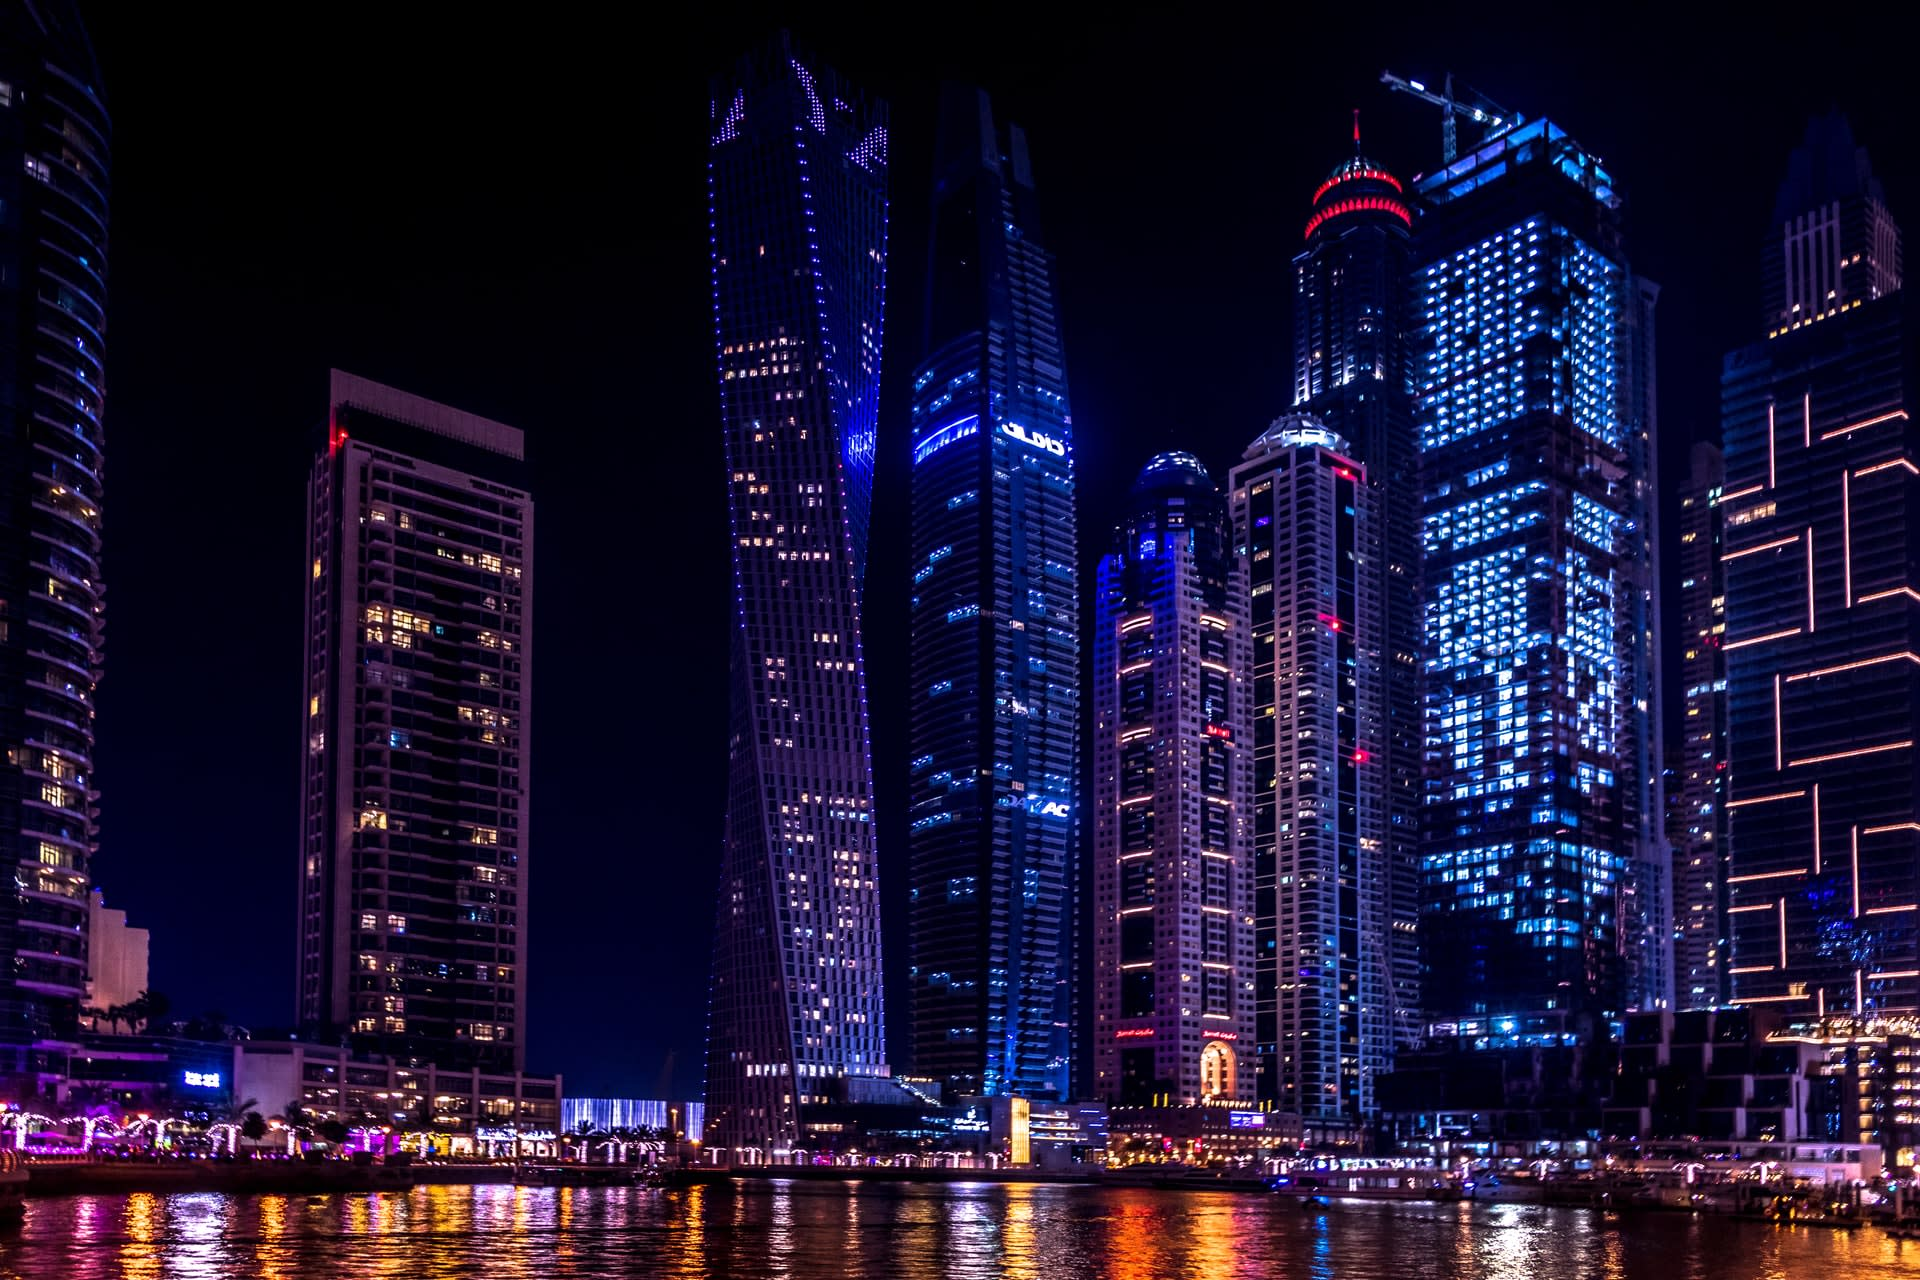 How To Apply For Trade License In Dubai